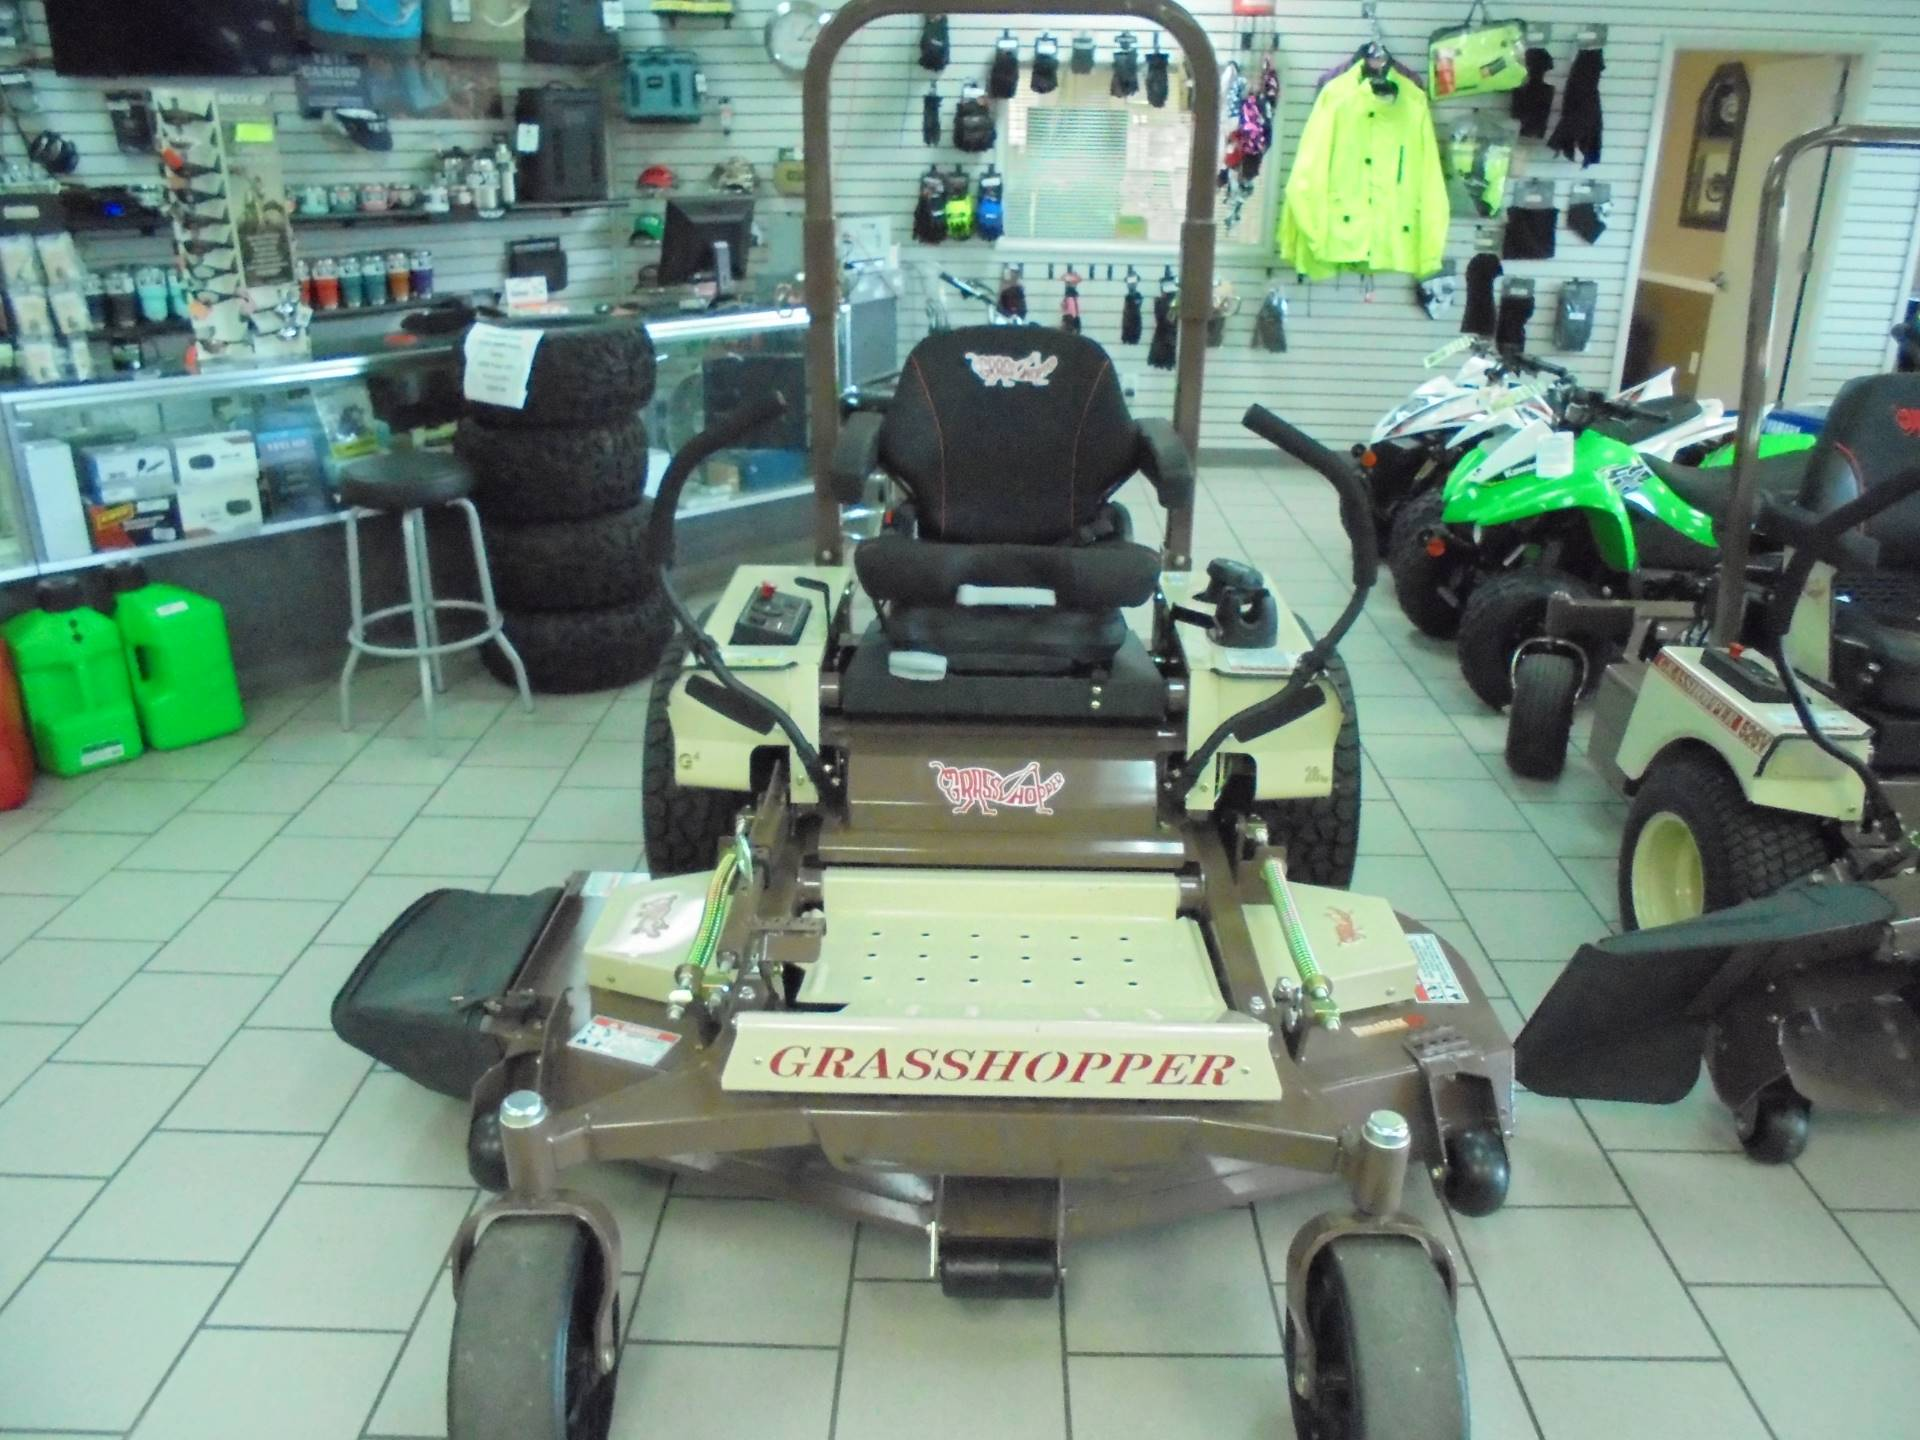 2019 Grasshopper Midmount 328G4 EFI 61 in. in Zephyrhills, Florida - Photo 2